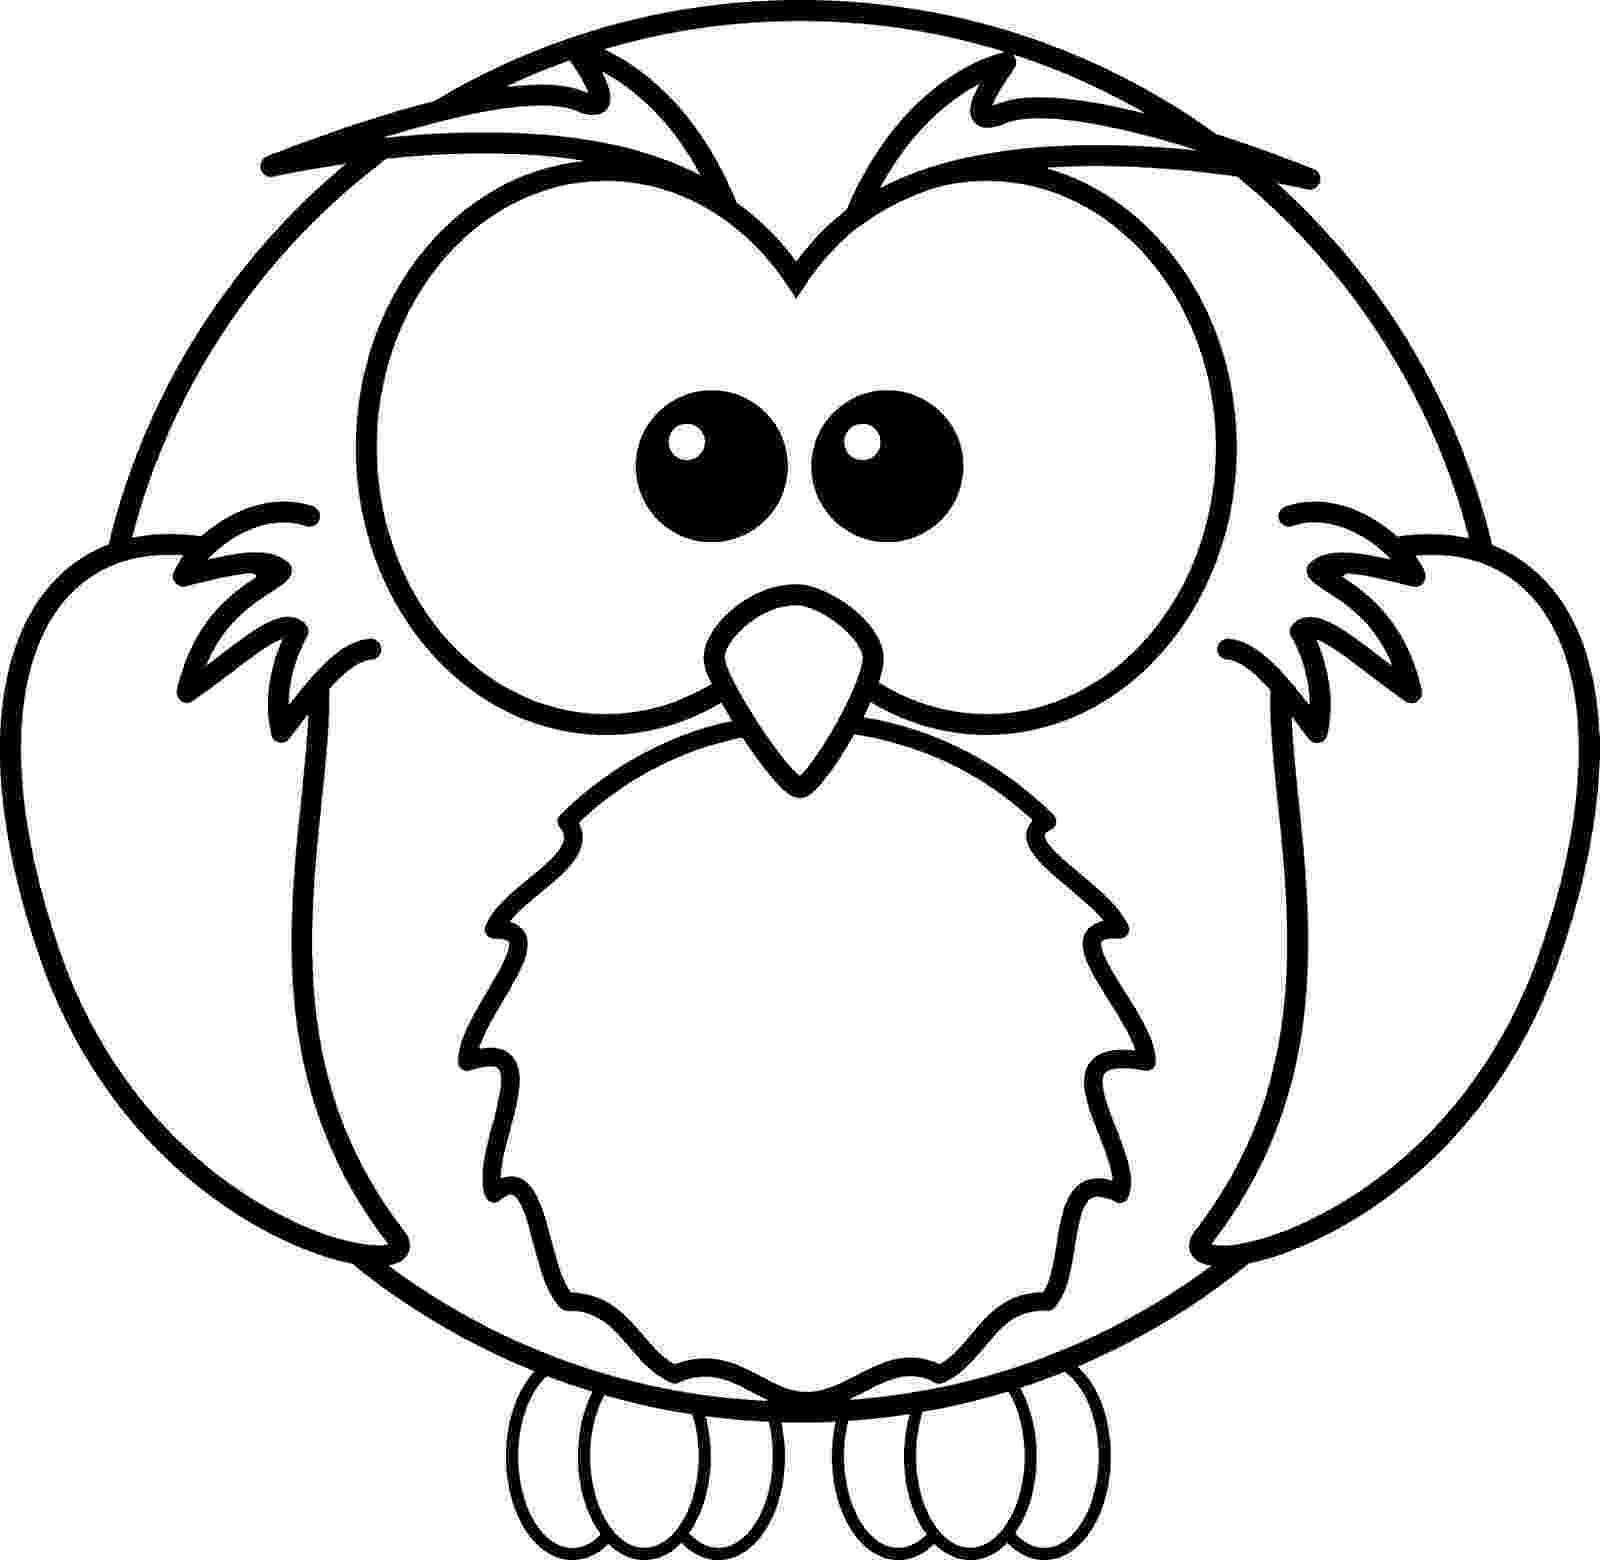 printable owl images baby owls coloring sheet to print printable owl images